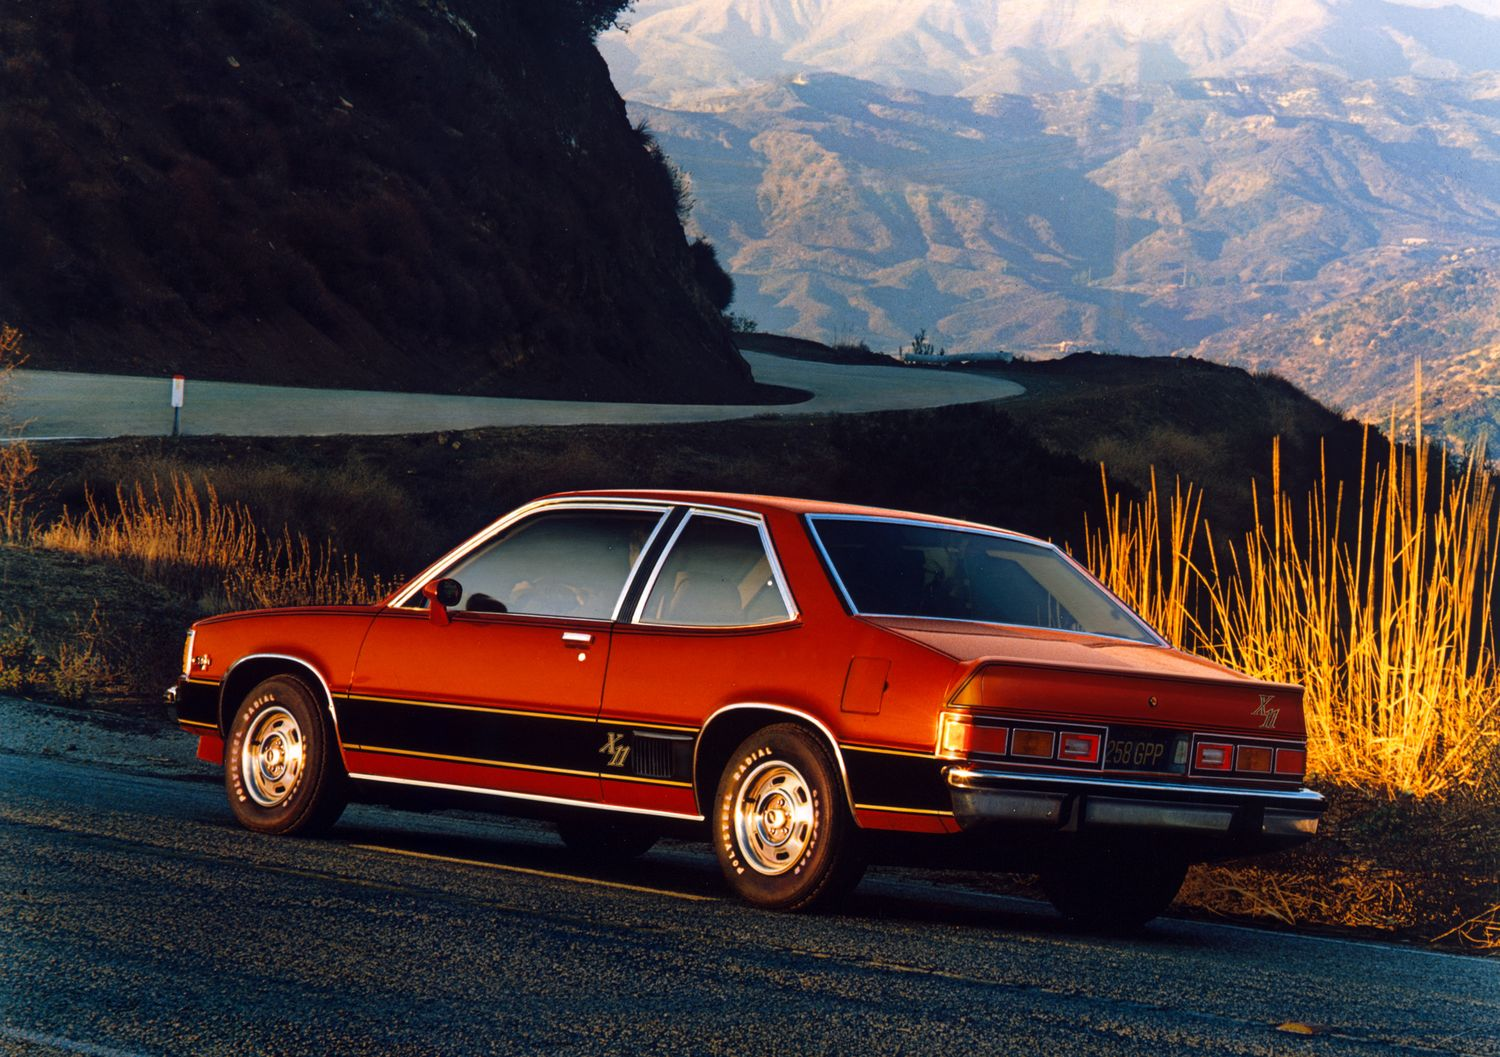 1980 Chevrolet Citation #18